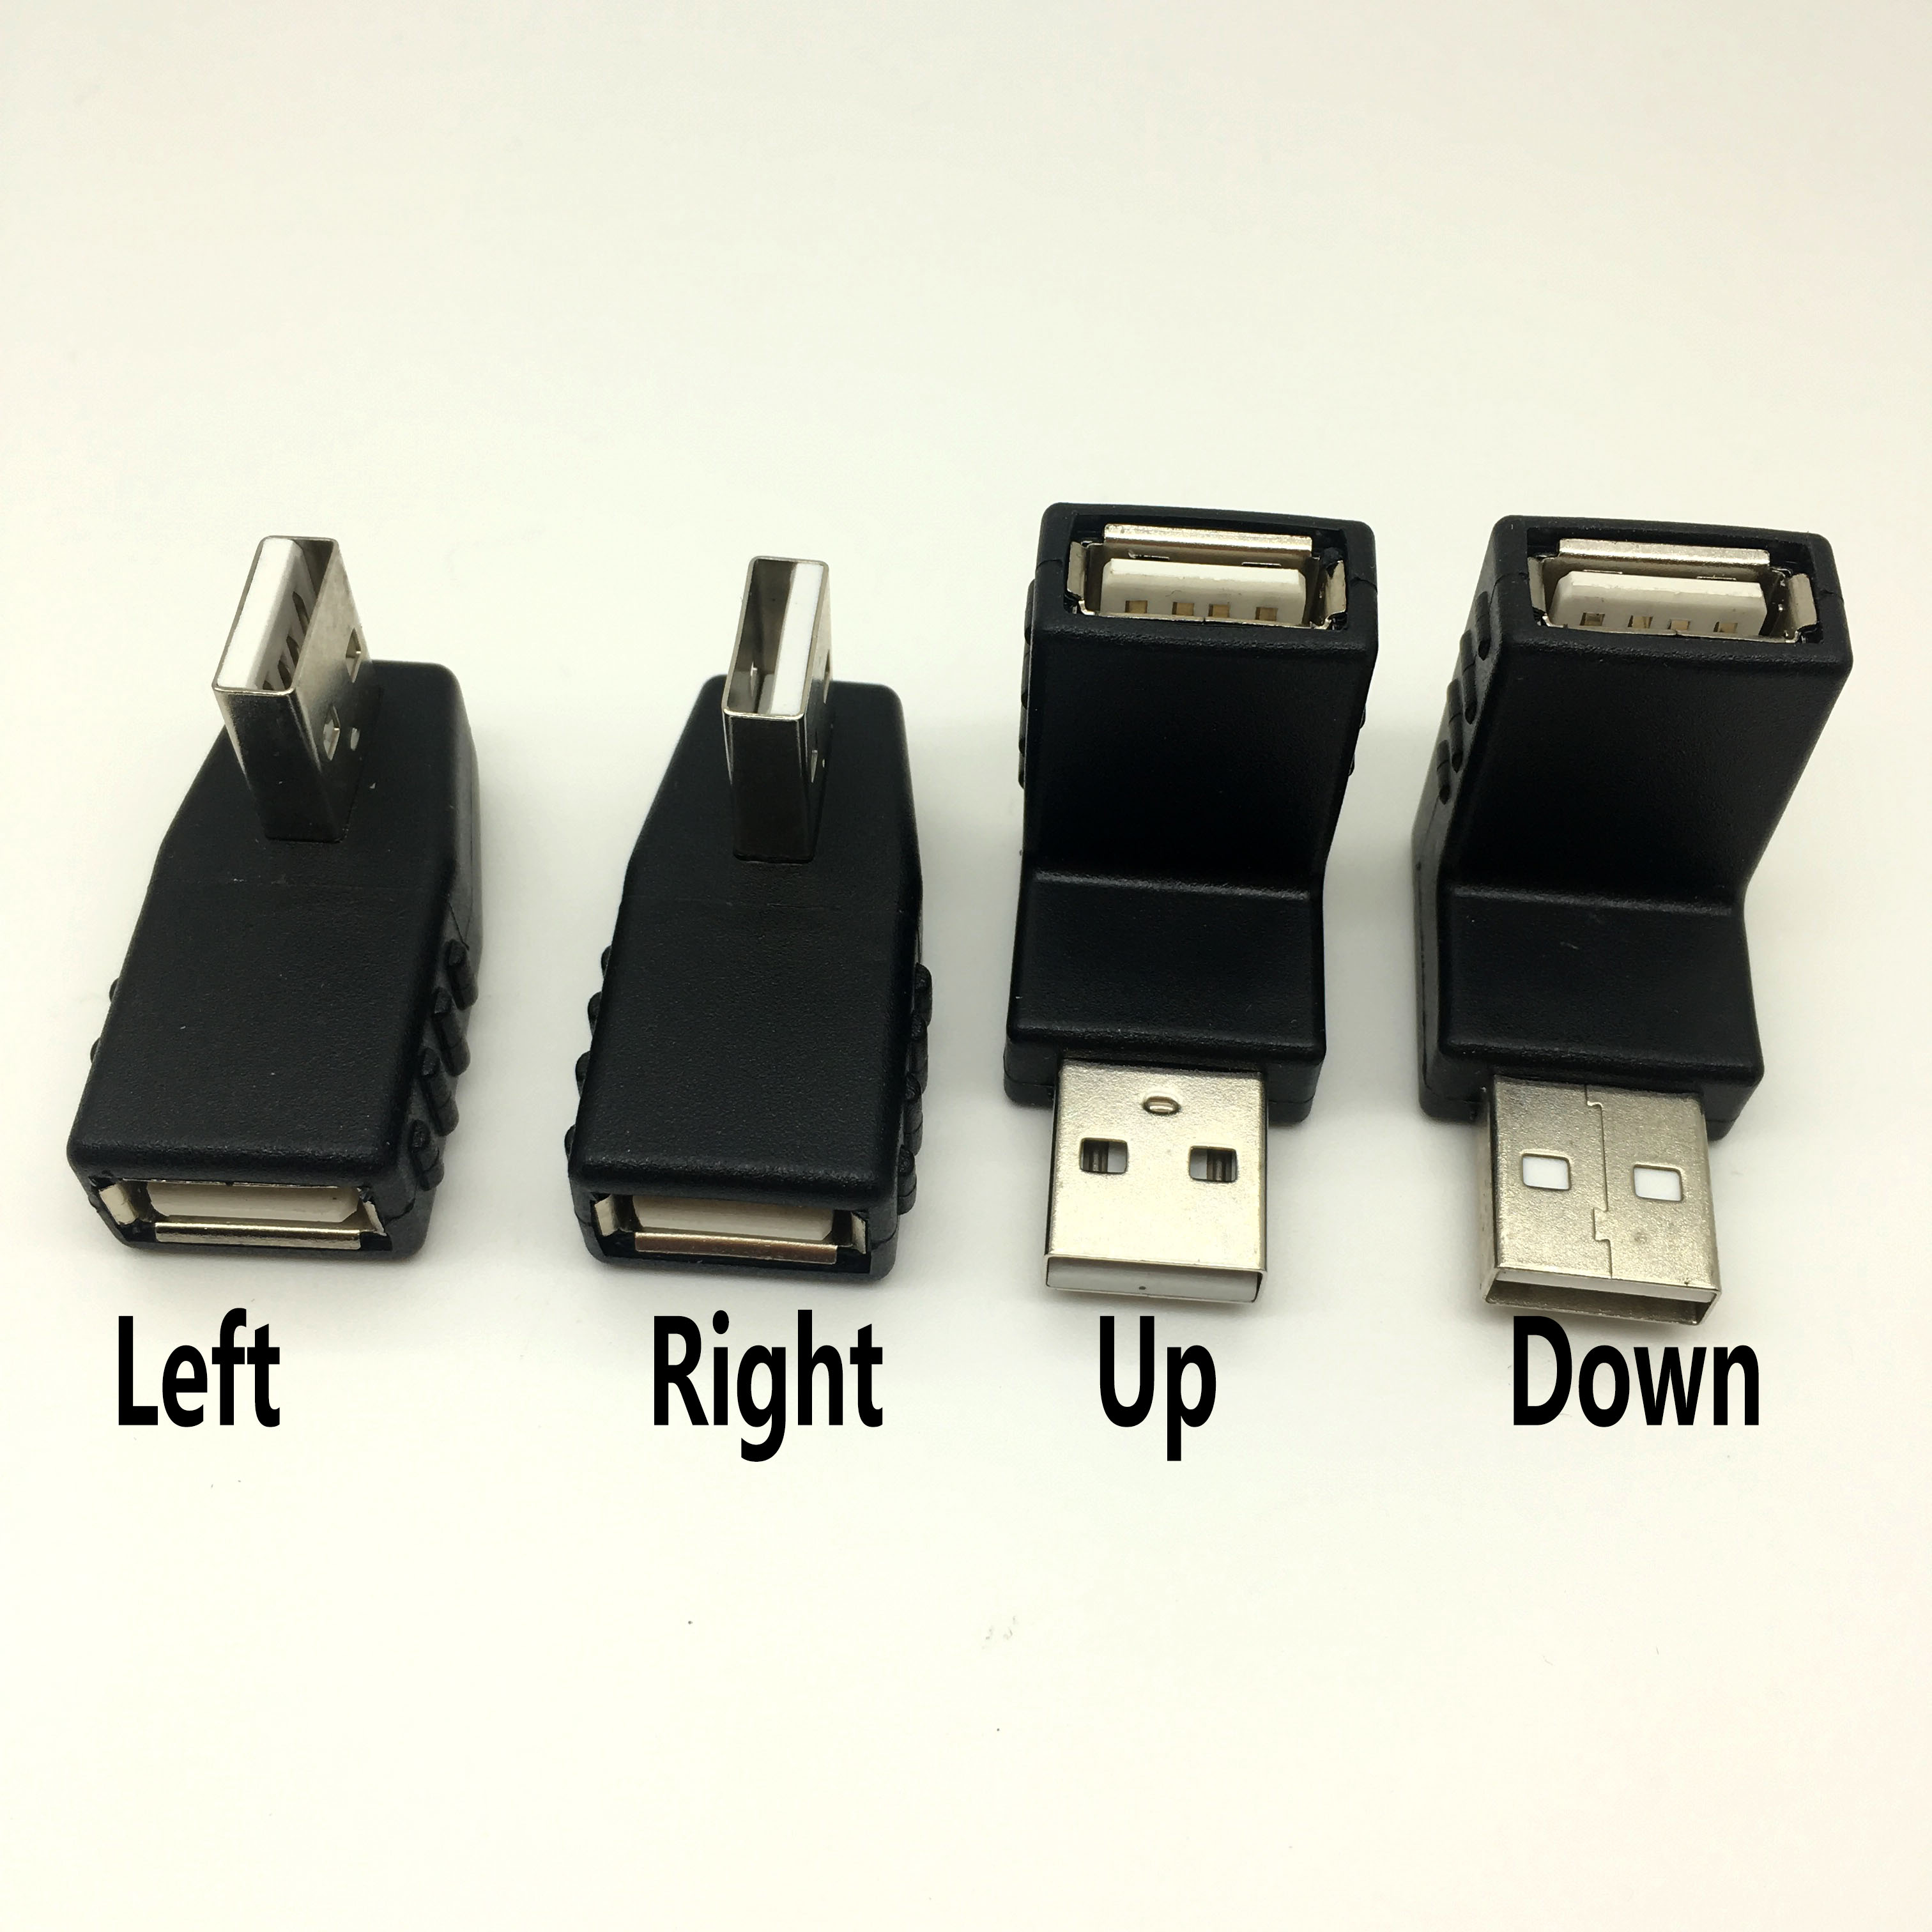 Left/Right/UP/Down Angle 90-Degree USB 2.0 Male 90 Angled USB Female To Male Adapter Cable